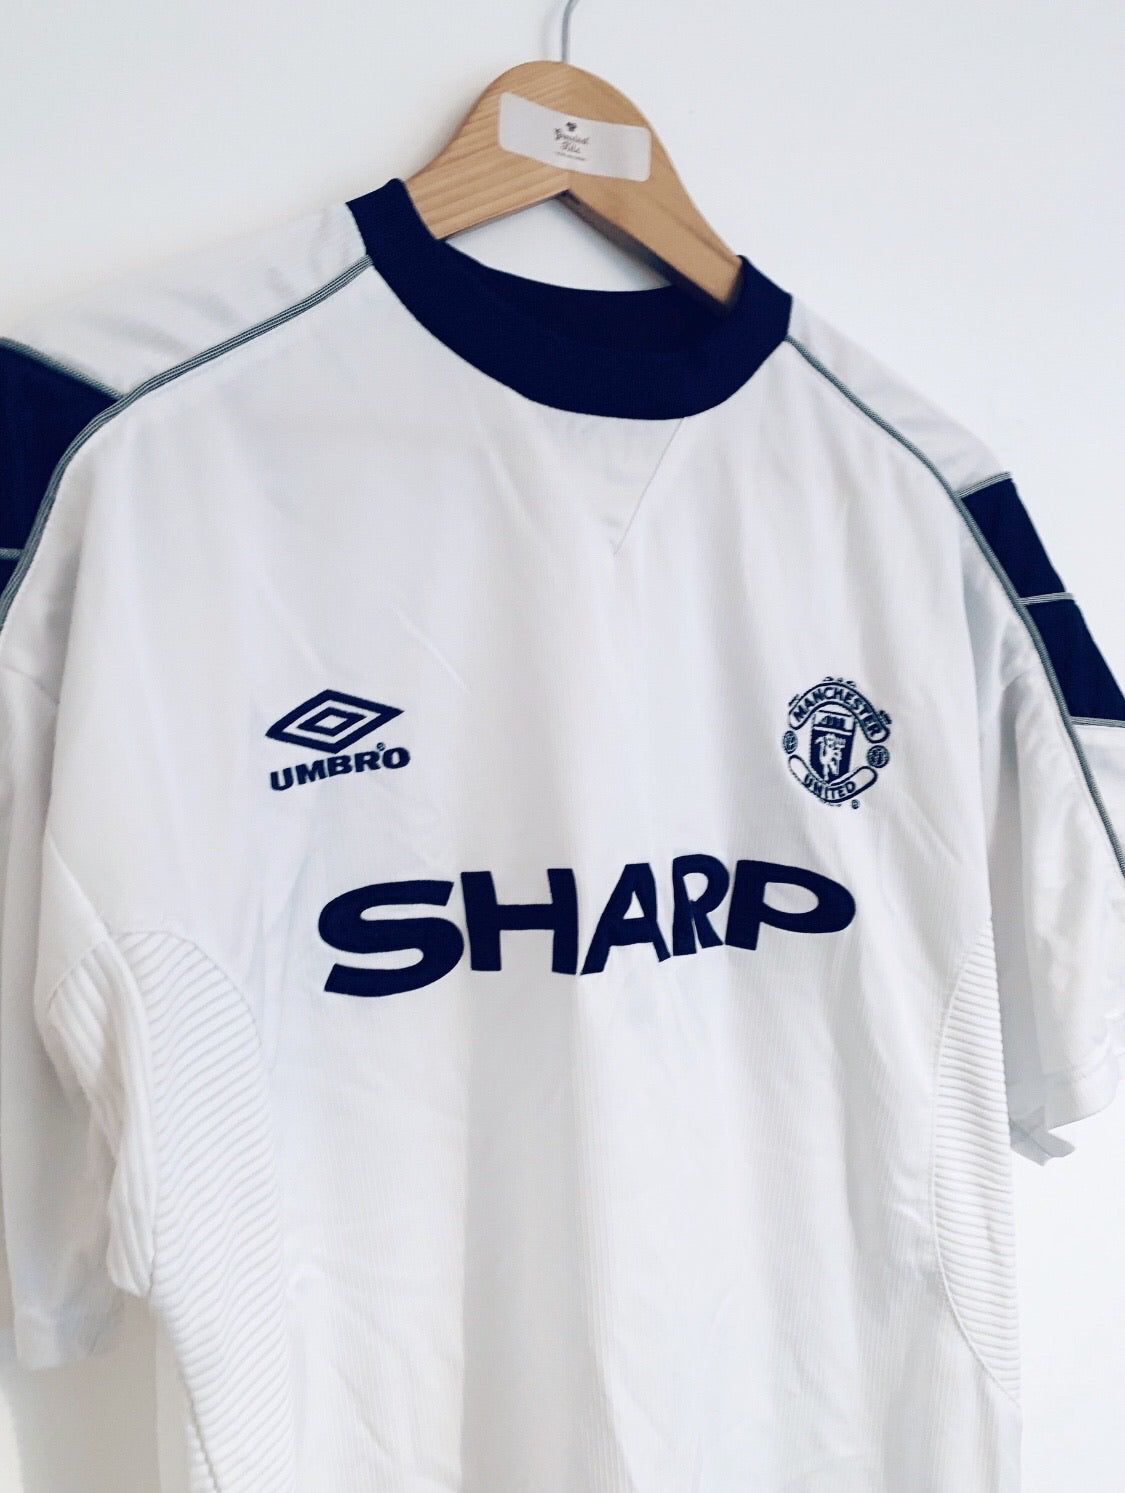 1999/00 Manchester United Third Shirt (M) 9/10